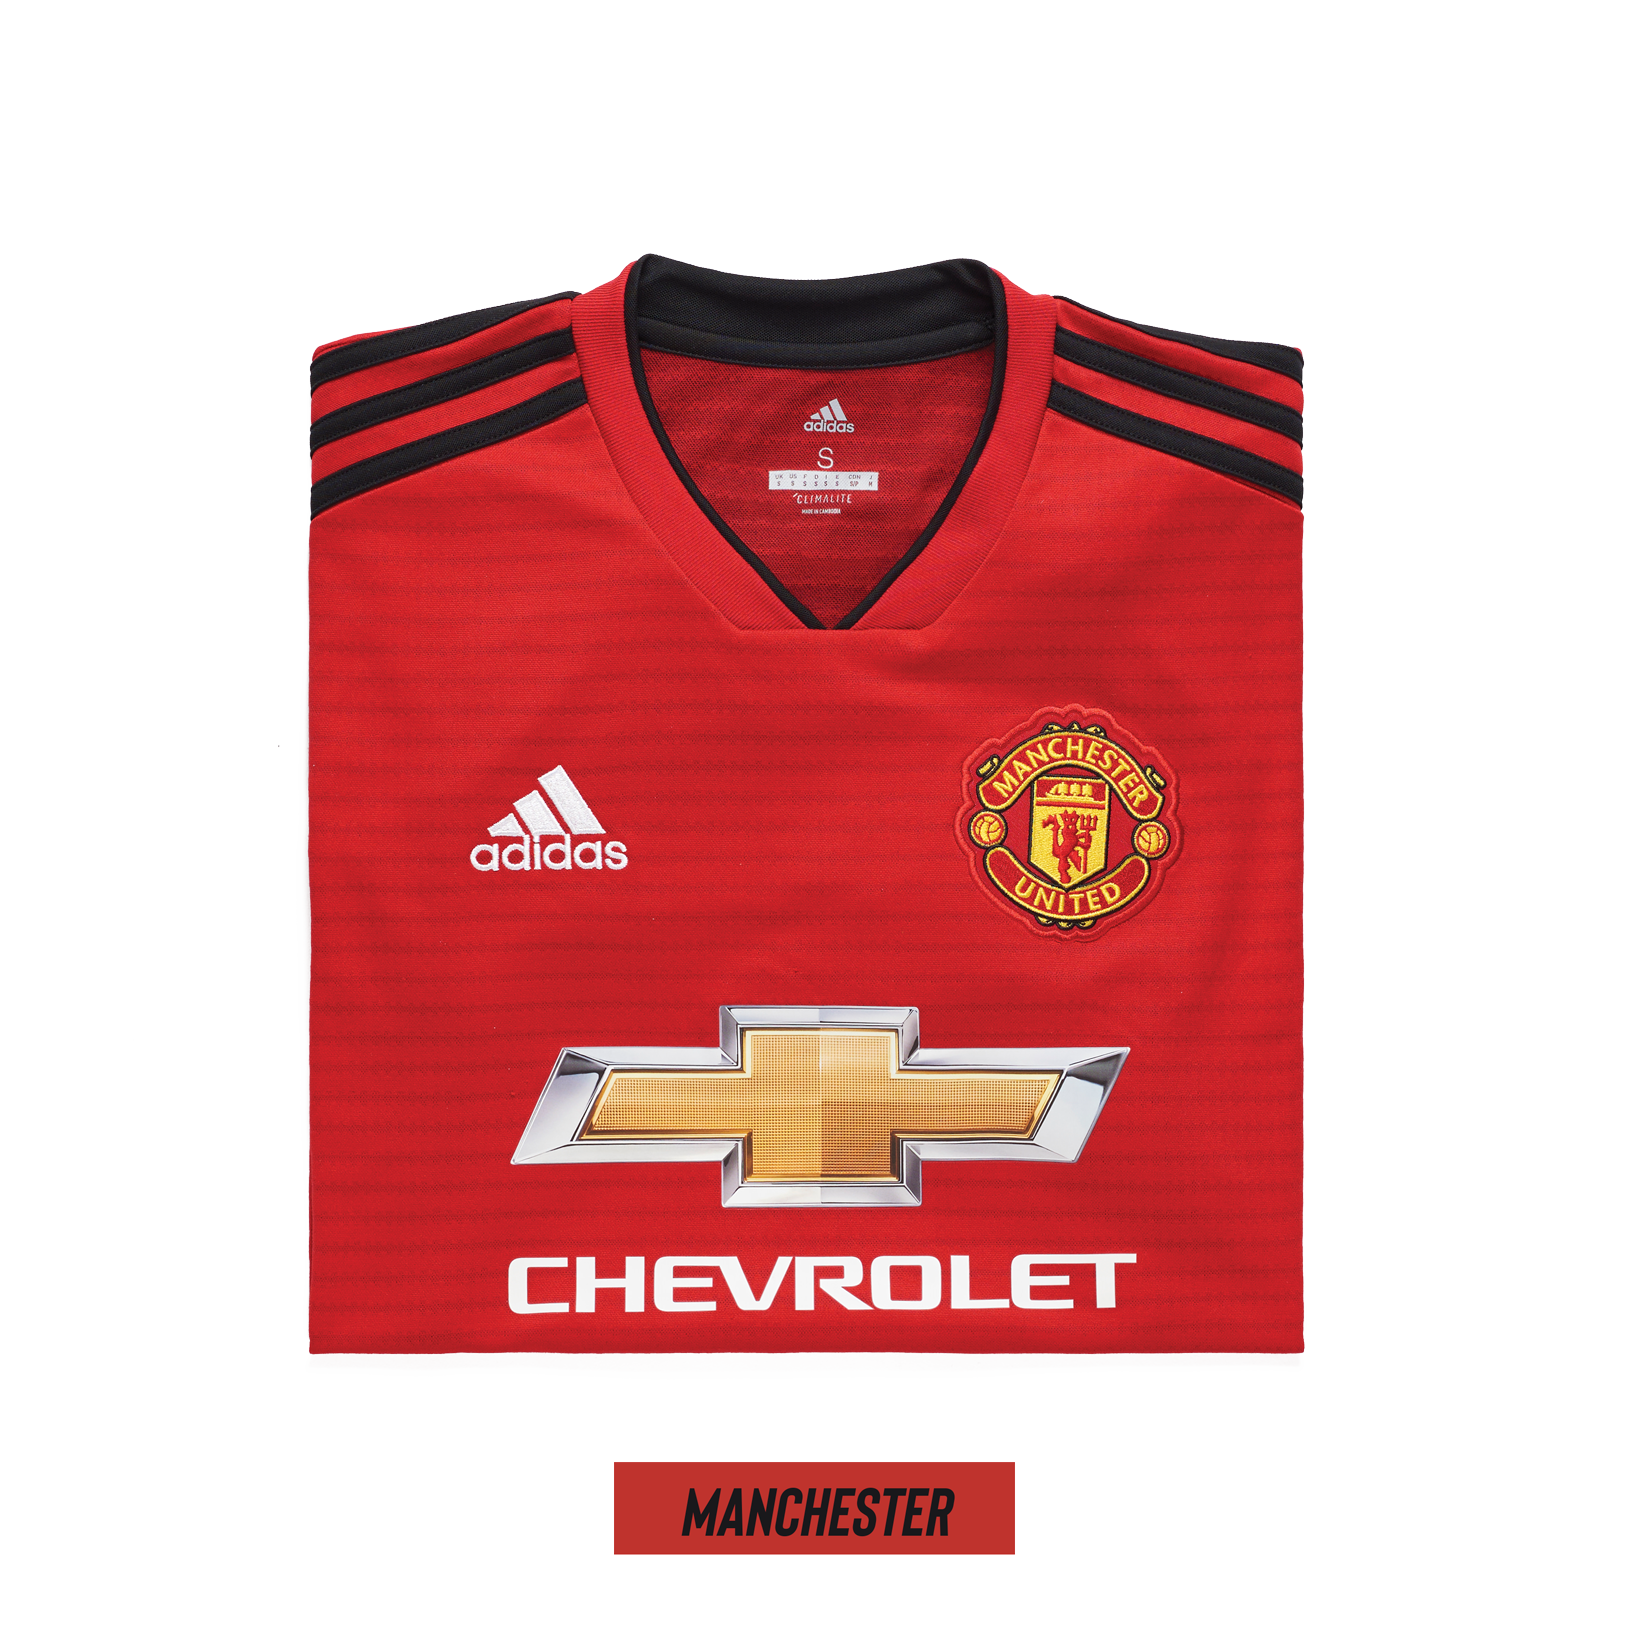 Glory-by-Nick-Pecori-Photographer-Manchester-United-Adidas-Kith-Parley-Manc-With-Label.png